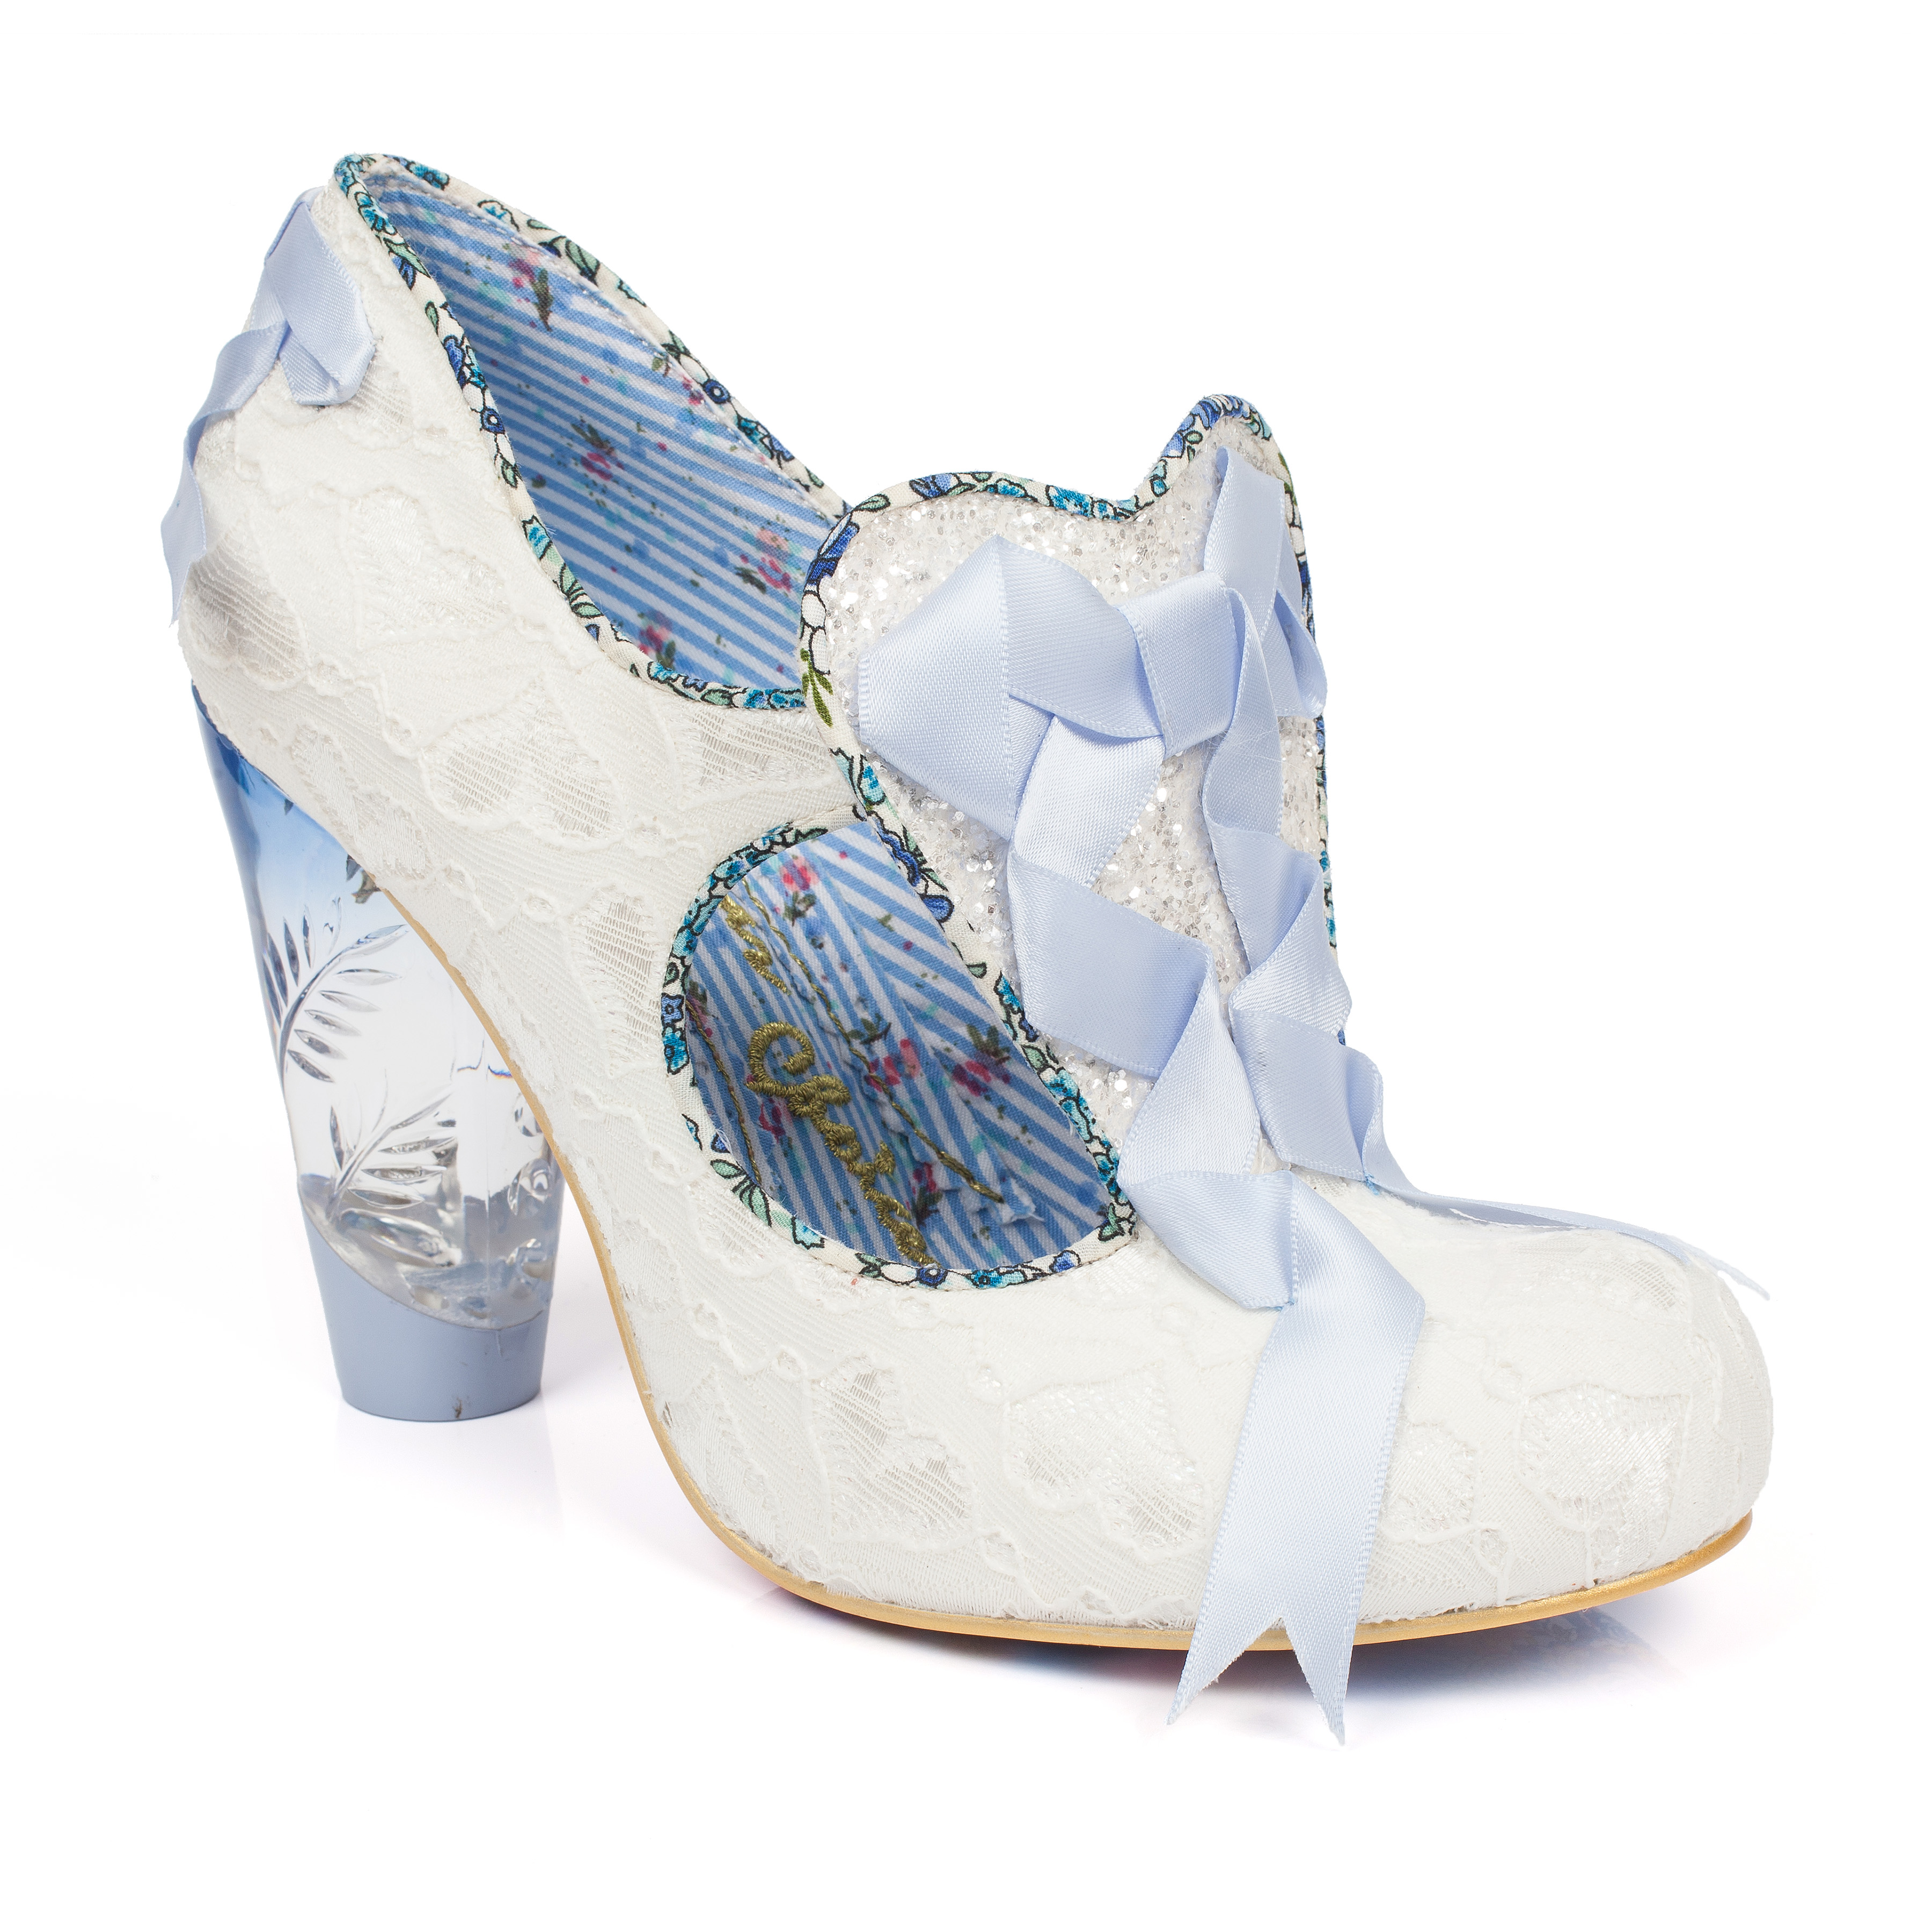 Quirky Wedding Shoes - Making a statement | CHWV